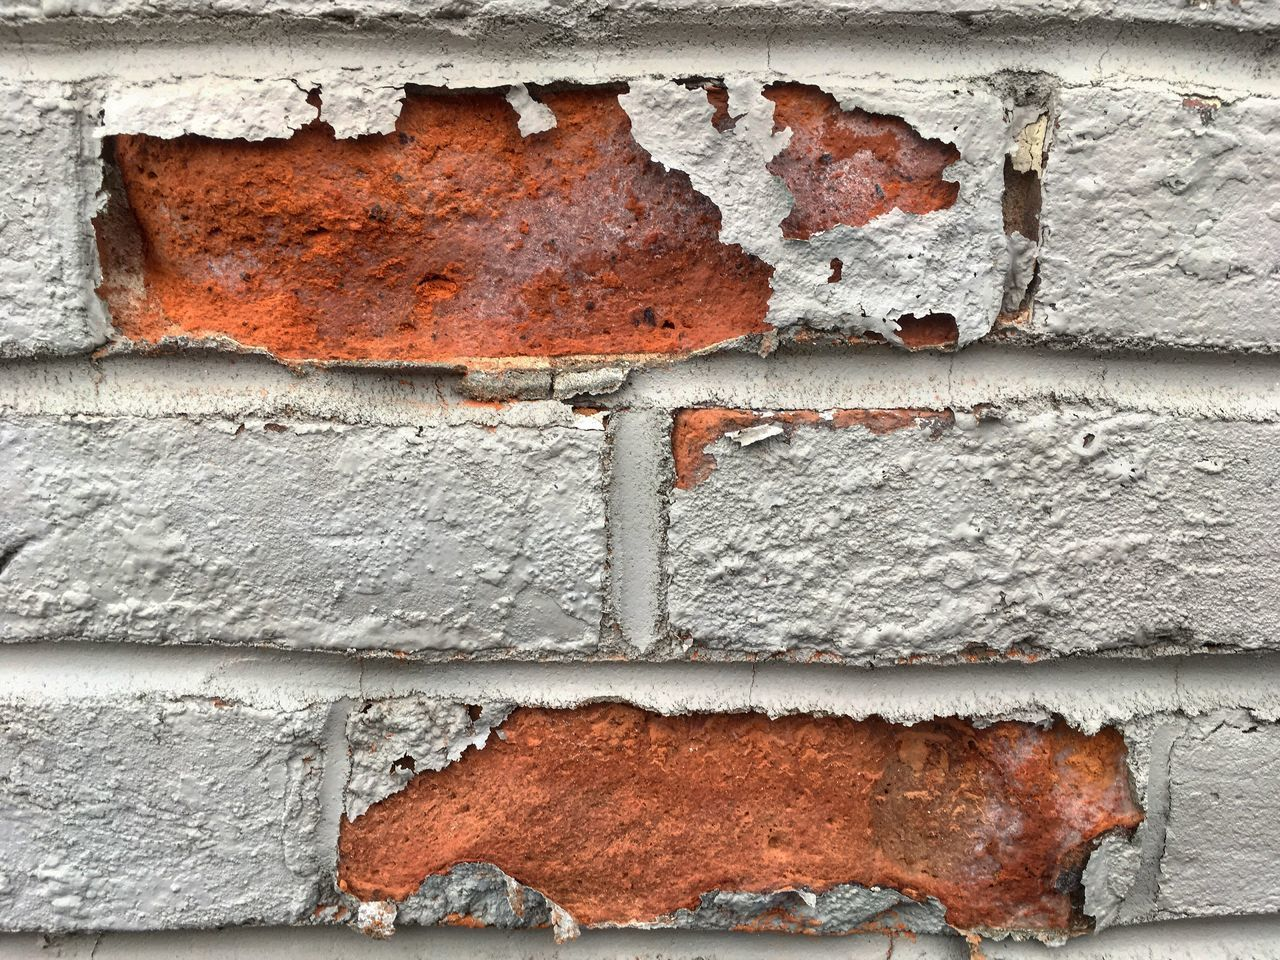 brick wall, wall - building feature, brick, wall, built structure, architecture, no people, close-up, textured, damaged, full frame, rough, day, backgrounds, weathered, old, pattern, bad condition, outdoors, broken, deterioration, concrete